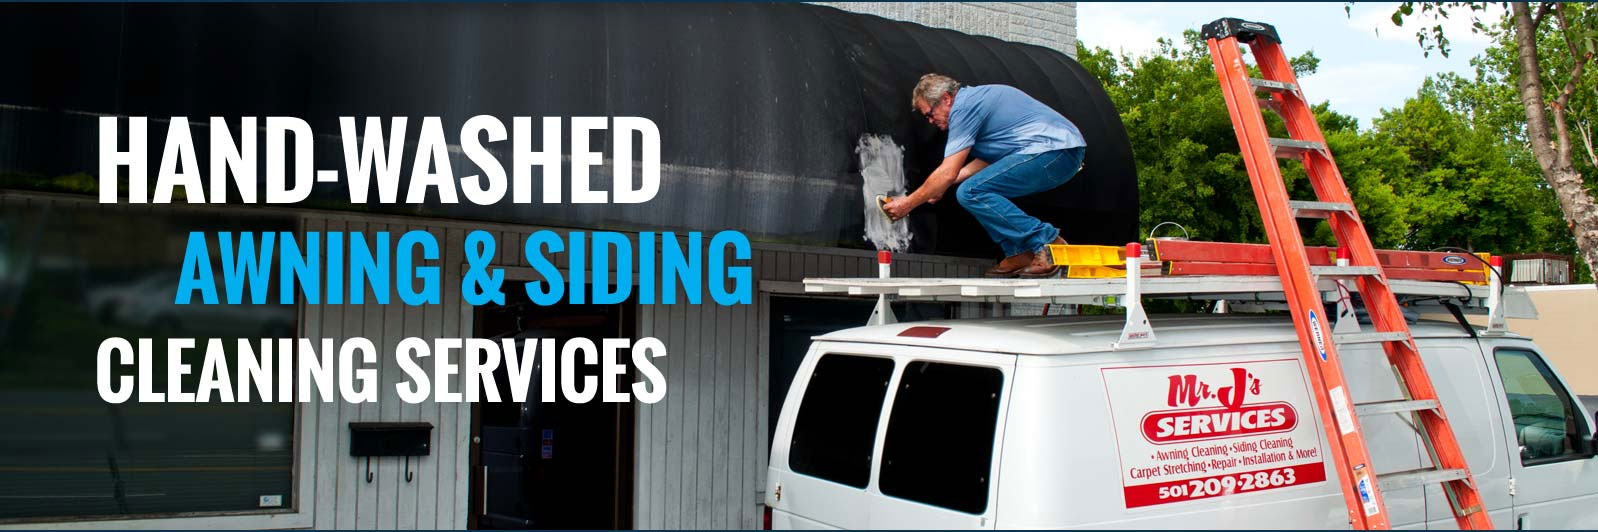 Mr. Ju0027s Services | Awning Cleaning U0026 Siding Cleaning Services